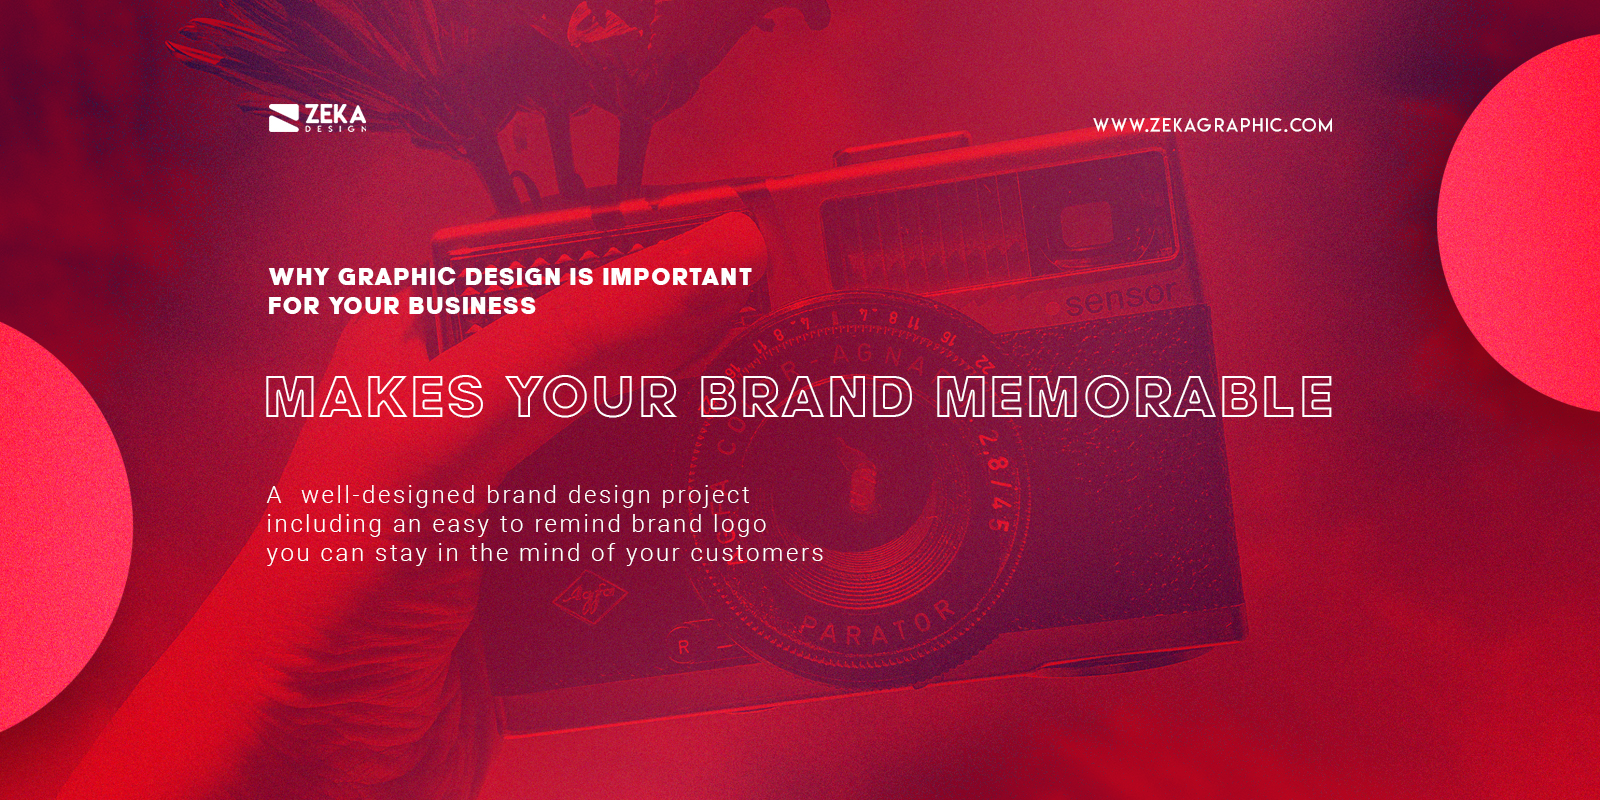 Makes Your Brand Memorable Using Good Graphic Design